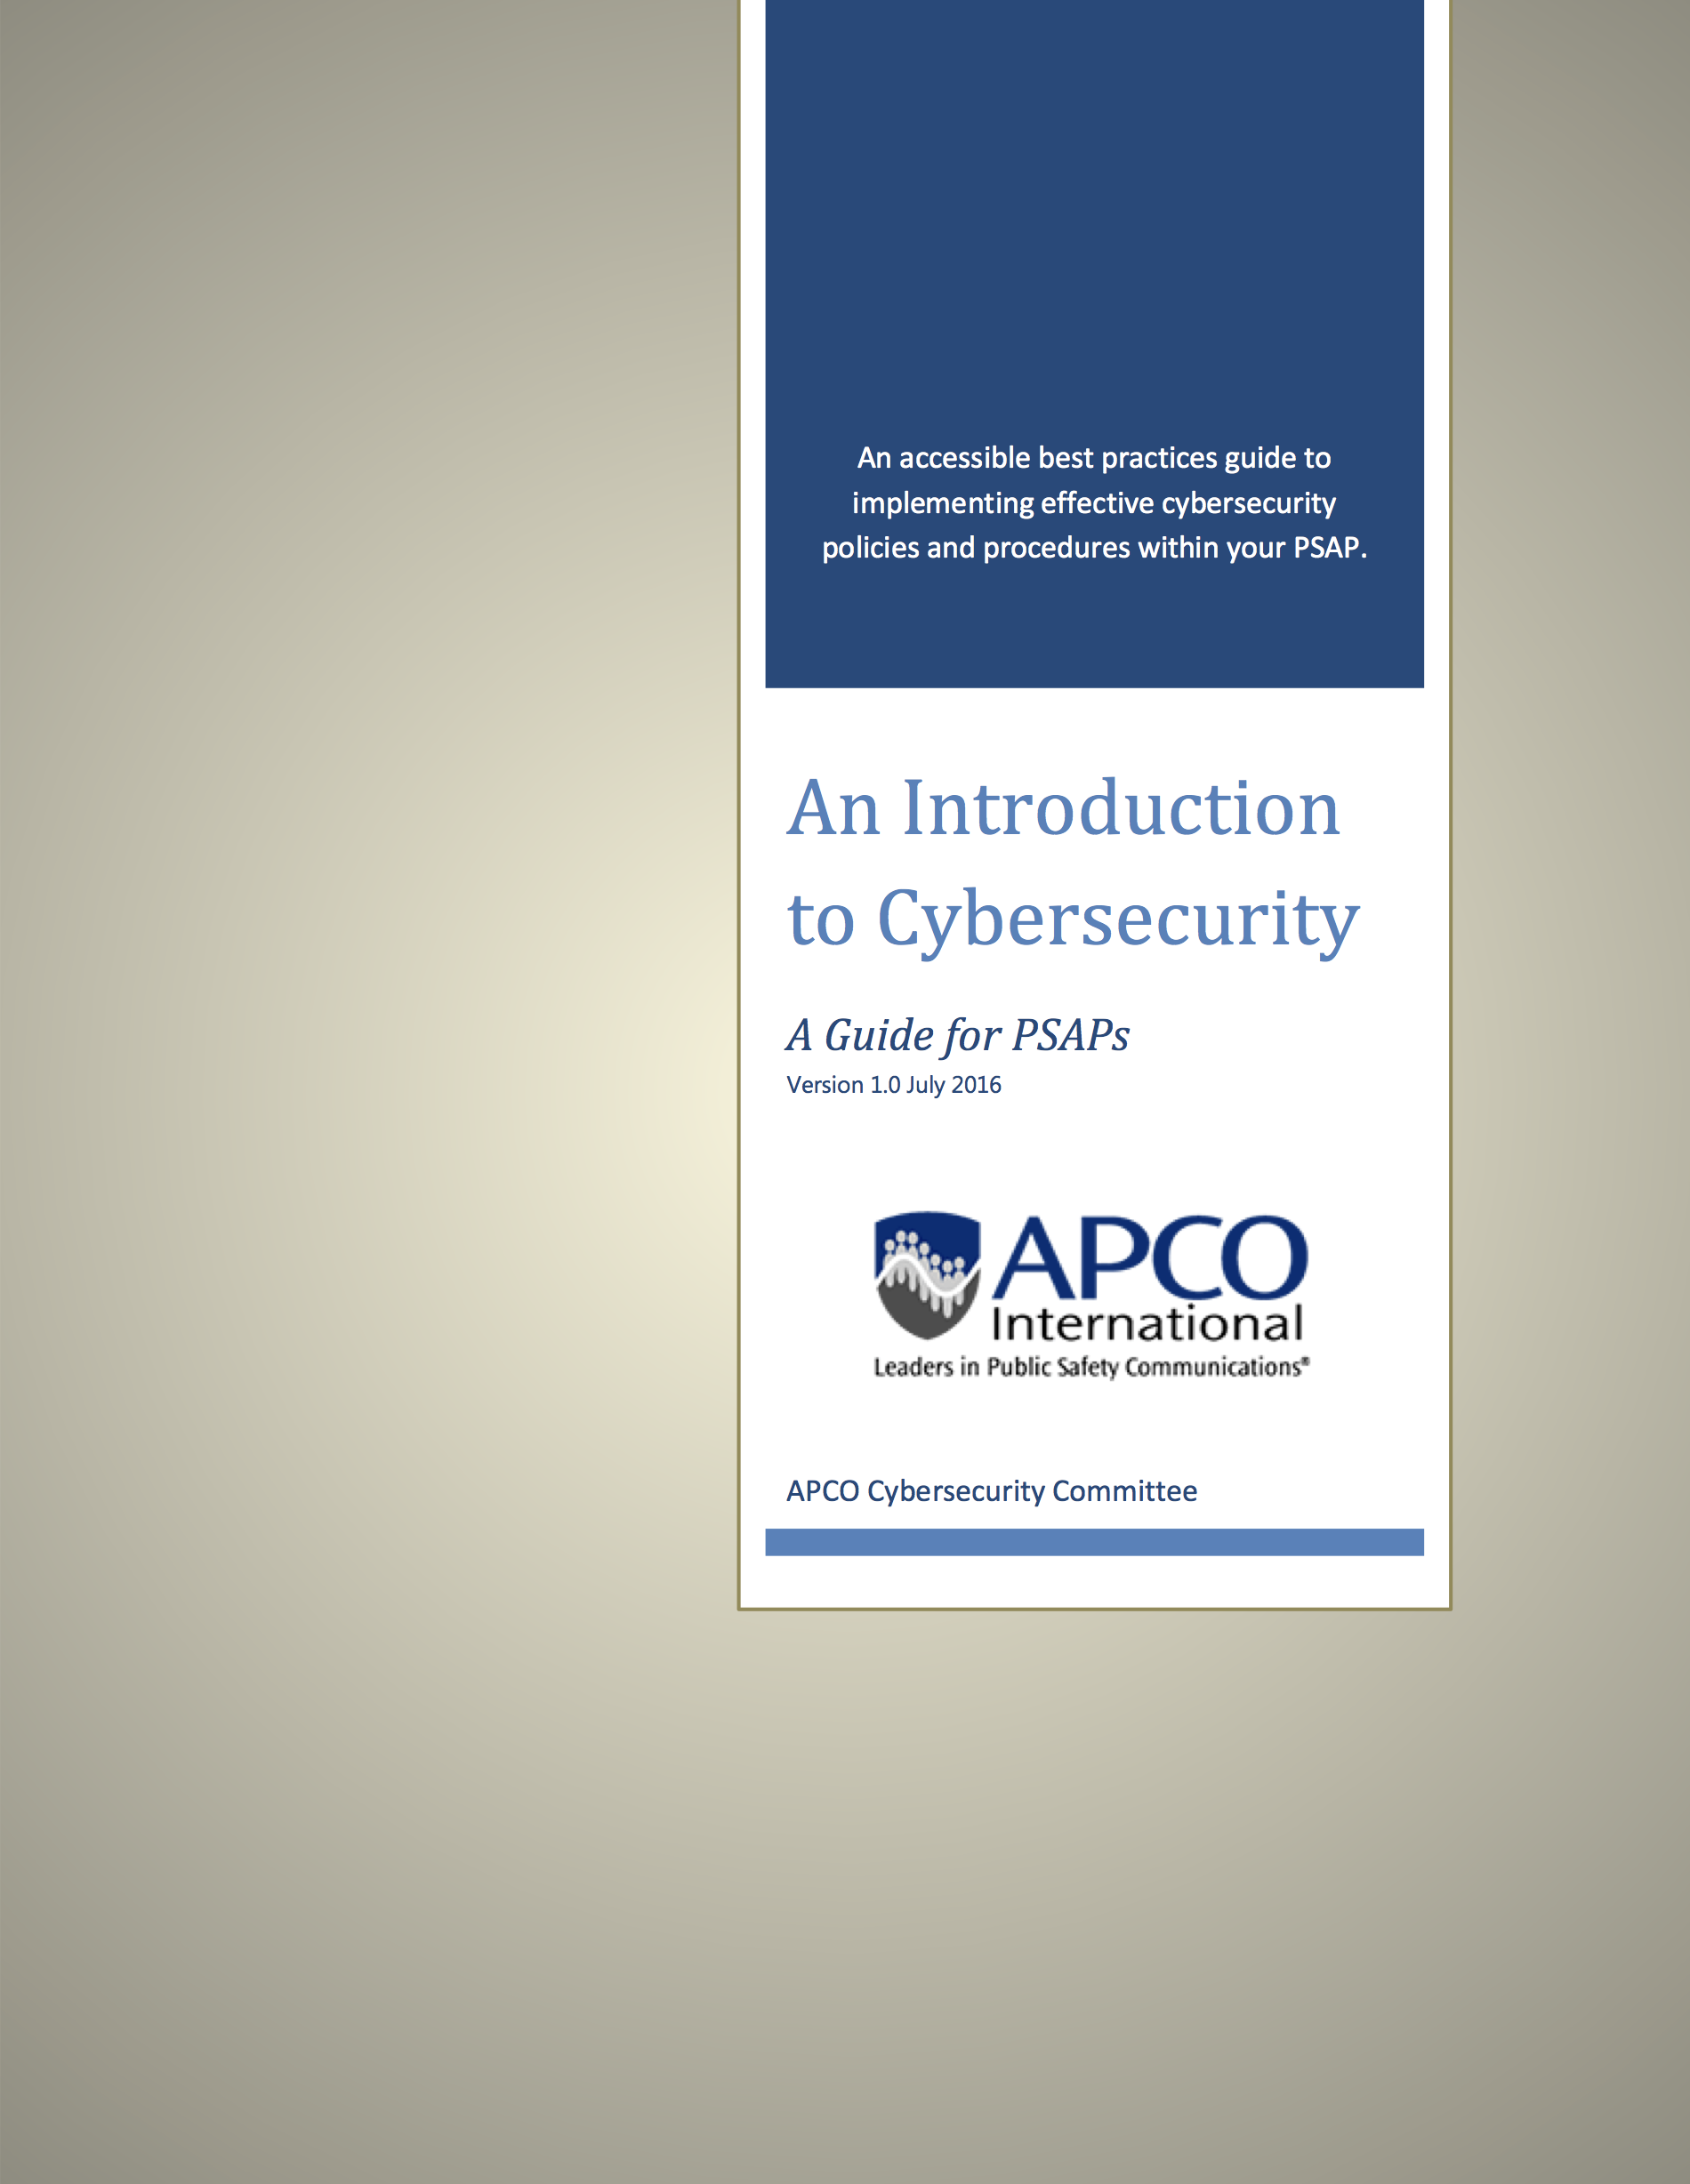 APCO: An Introduction to Cybersecurity